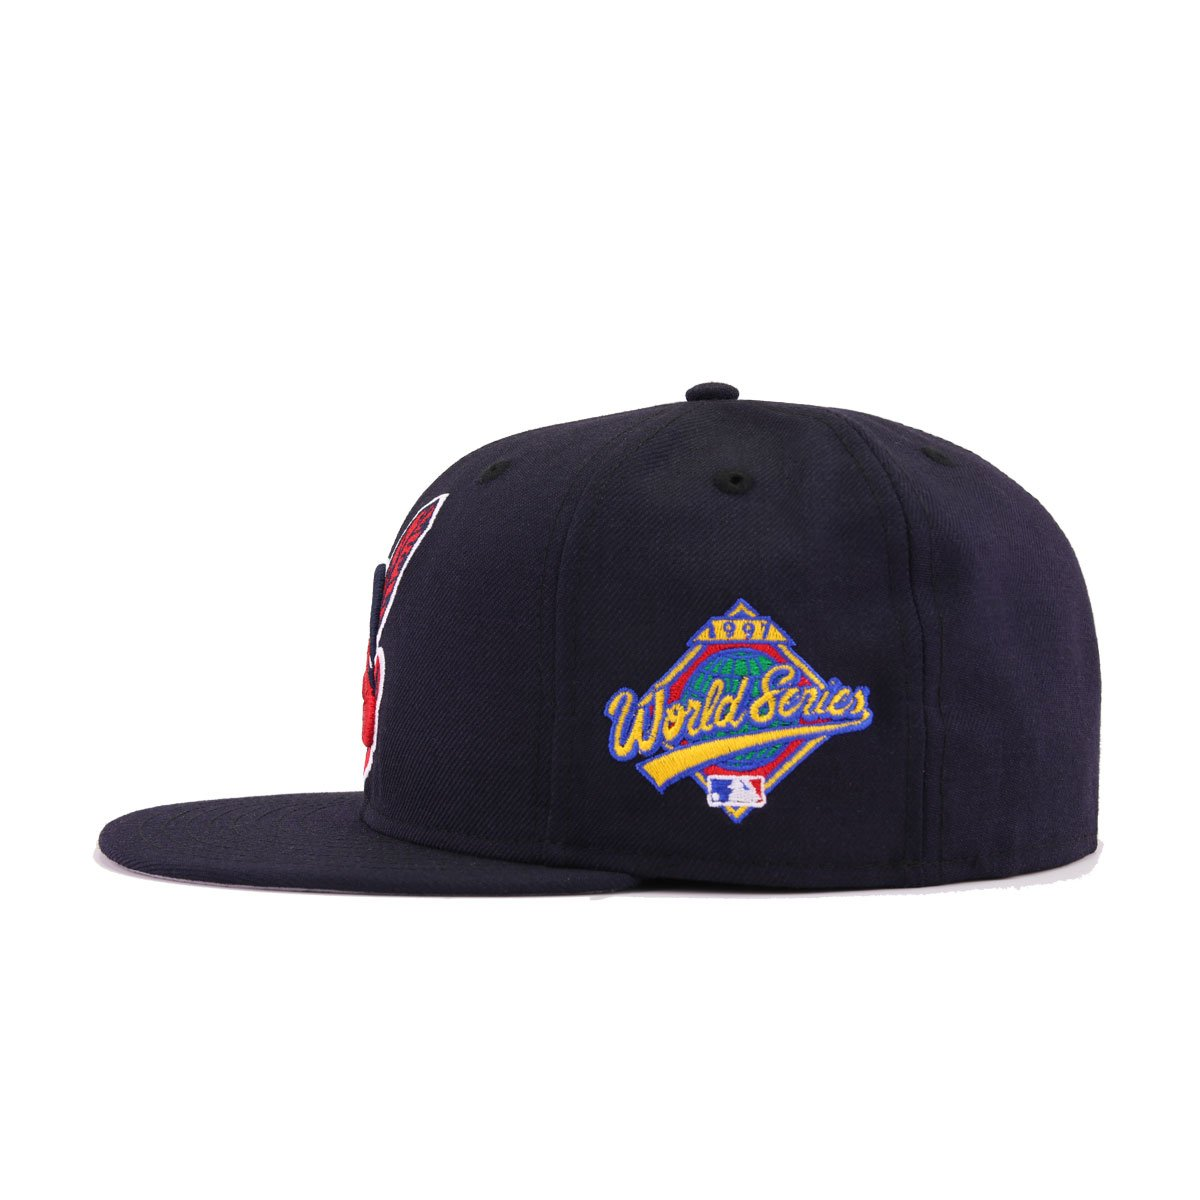 Cleveland Indians Navy 1997 World Series Cooperstown New Era 59Fifty Fitted